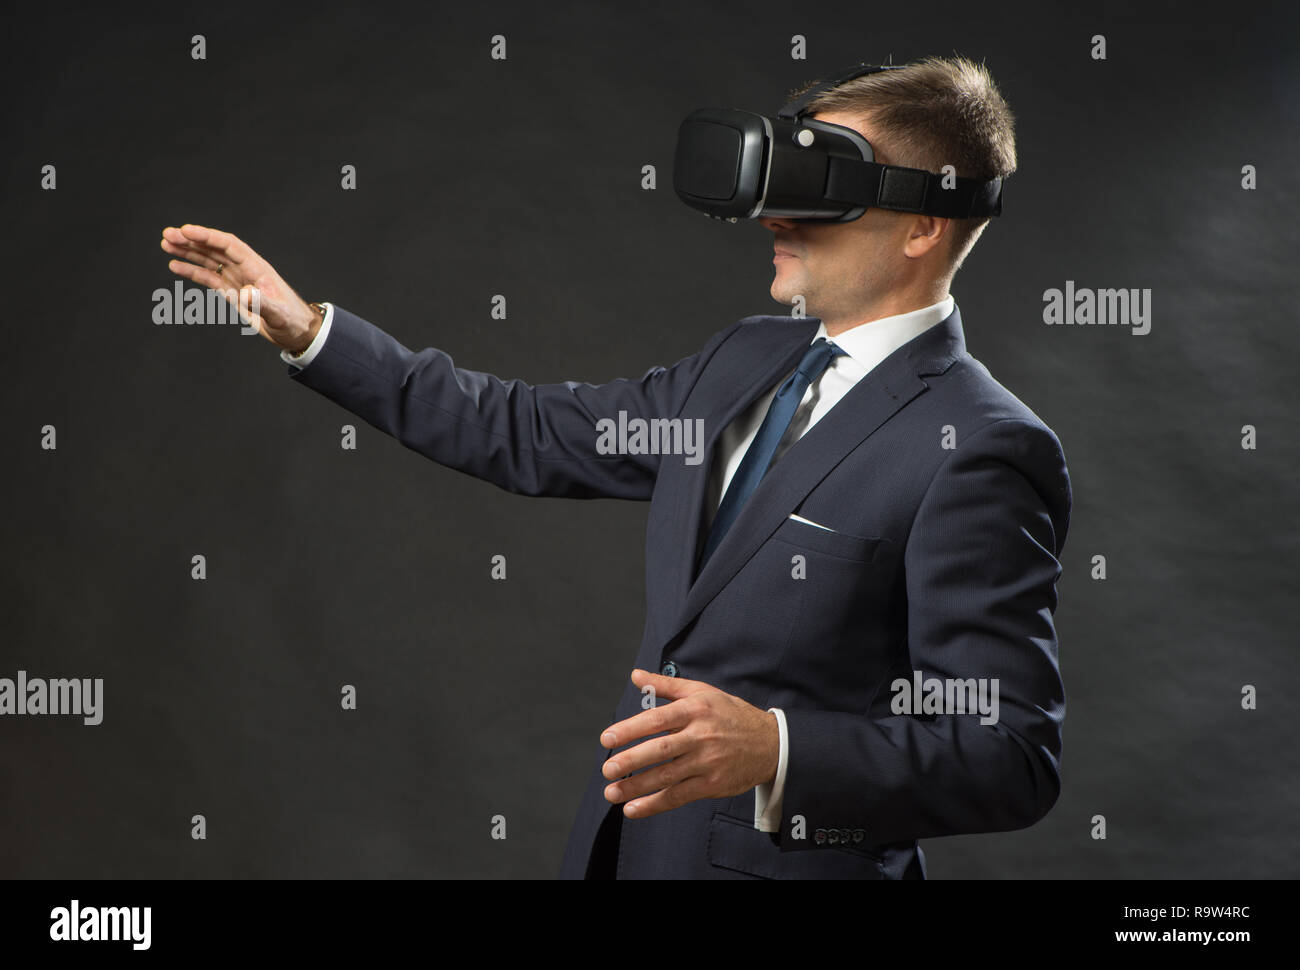 3a62261f6565 360. Virtual game. Man in black suit uses a virtual reality glasses ...